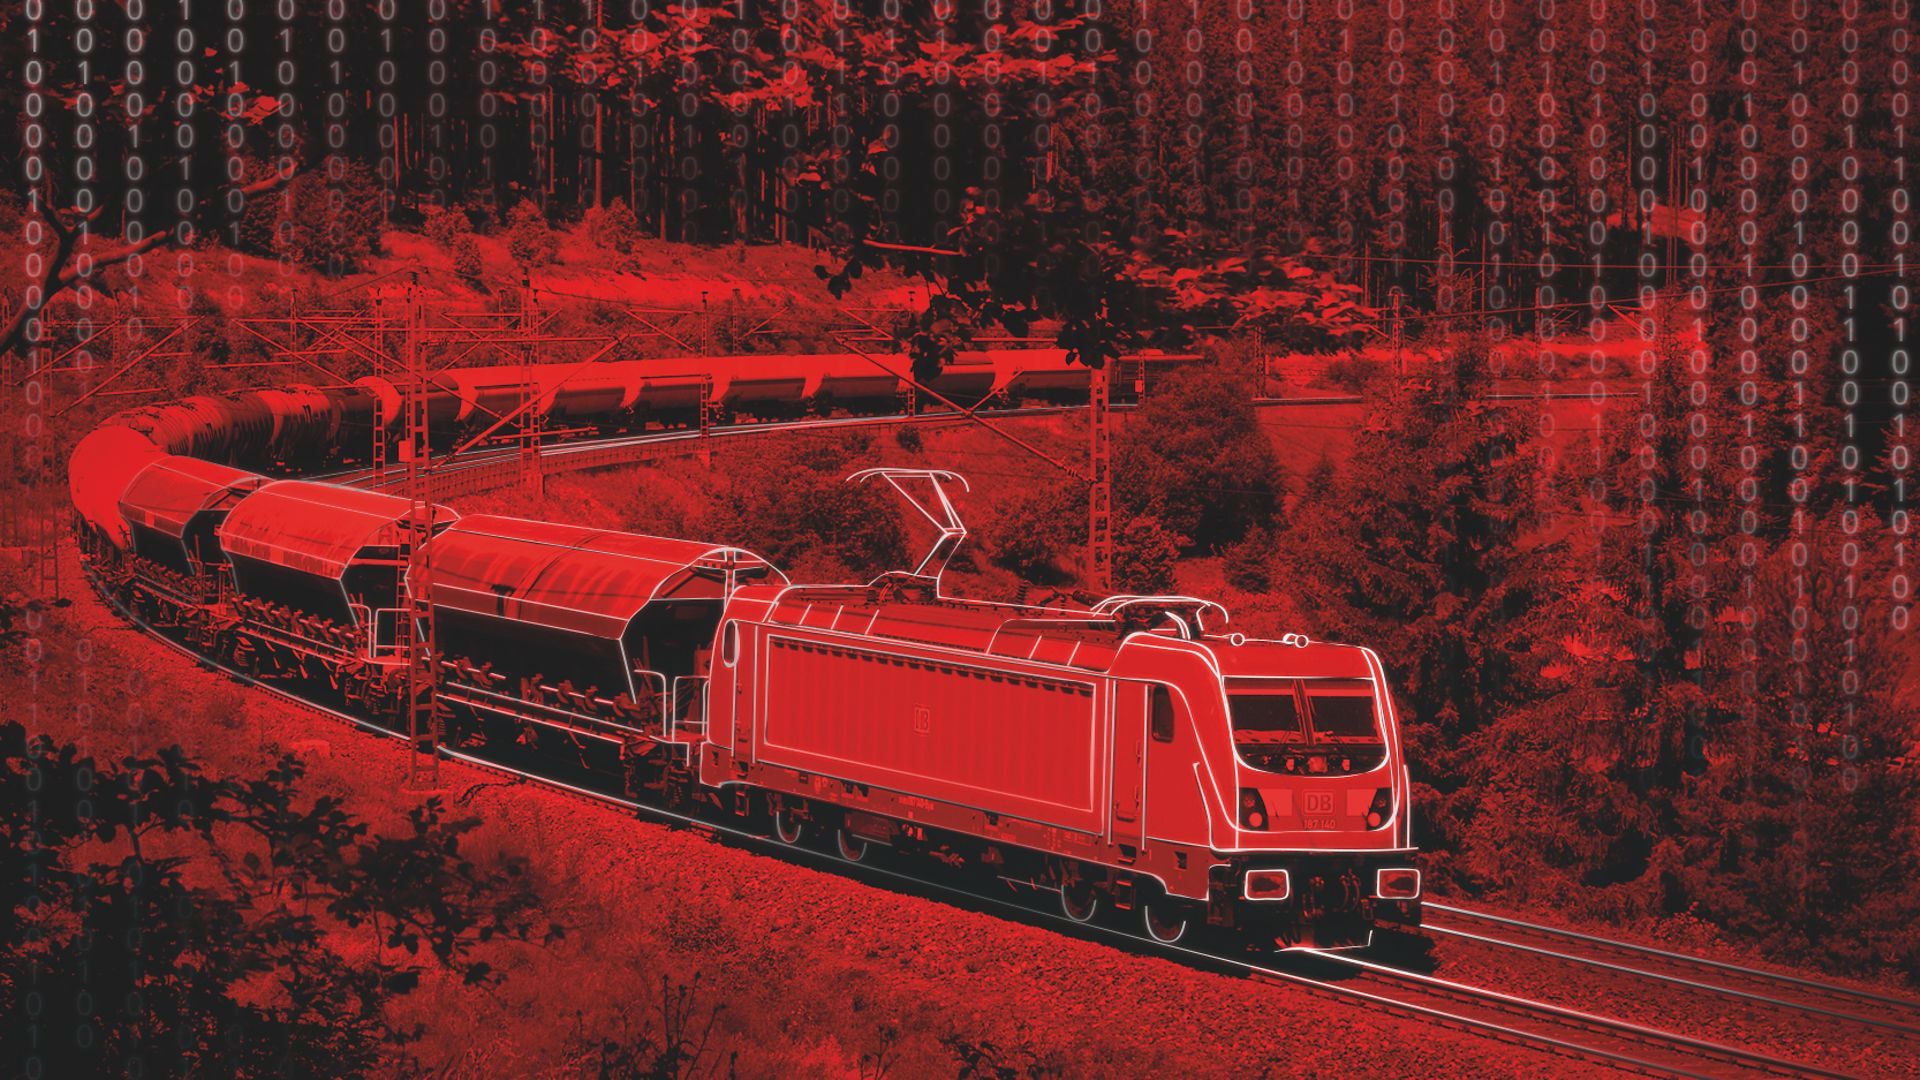 Red cooured picture of a freight train.